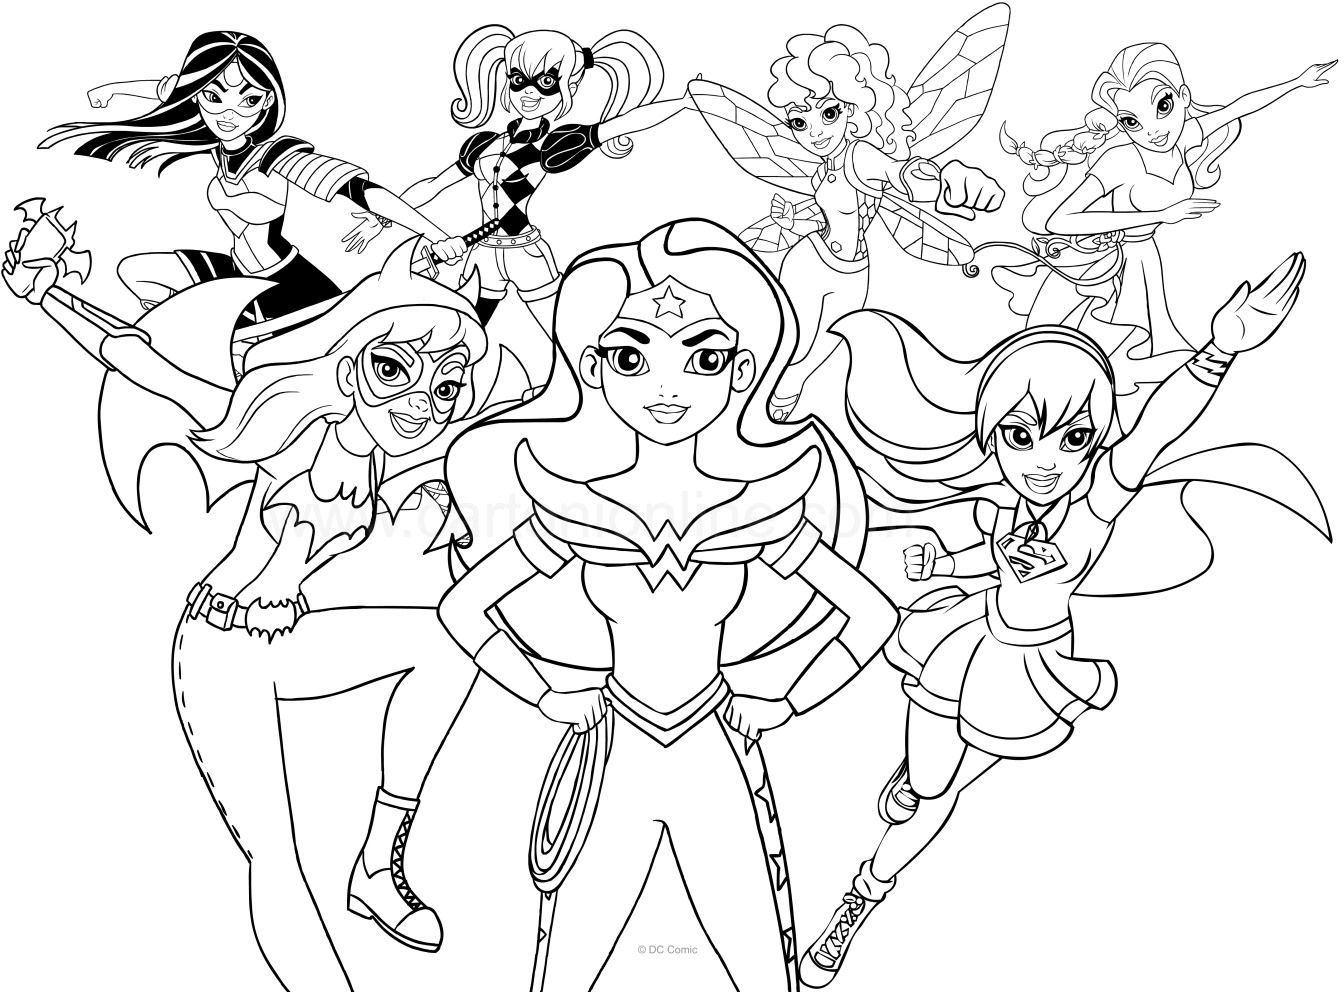 Free Printable Girl Superhero Coloring Pages To Color Superhero Coloring Pages Superhero Coloring Coloring Pages For Girls